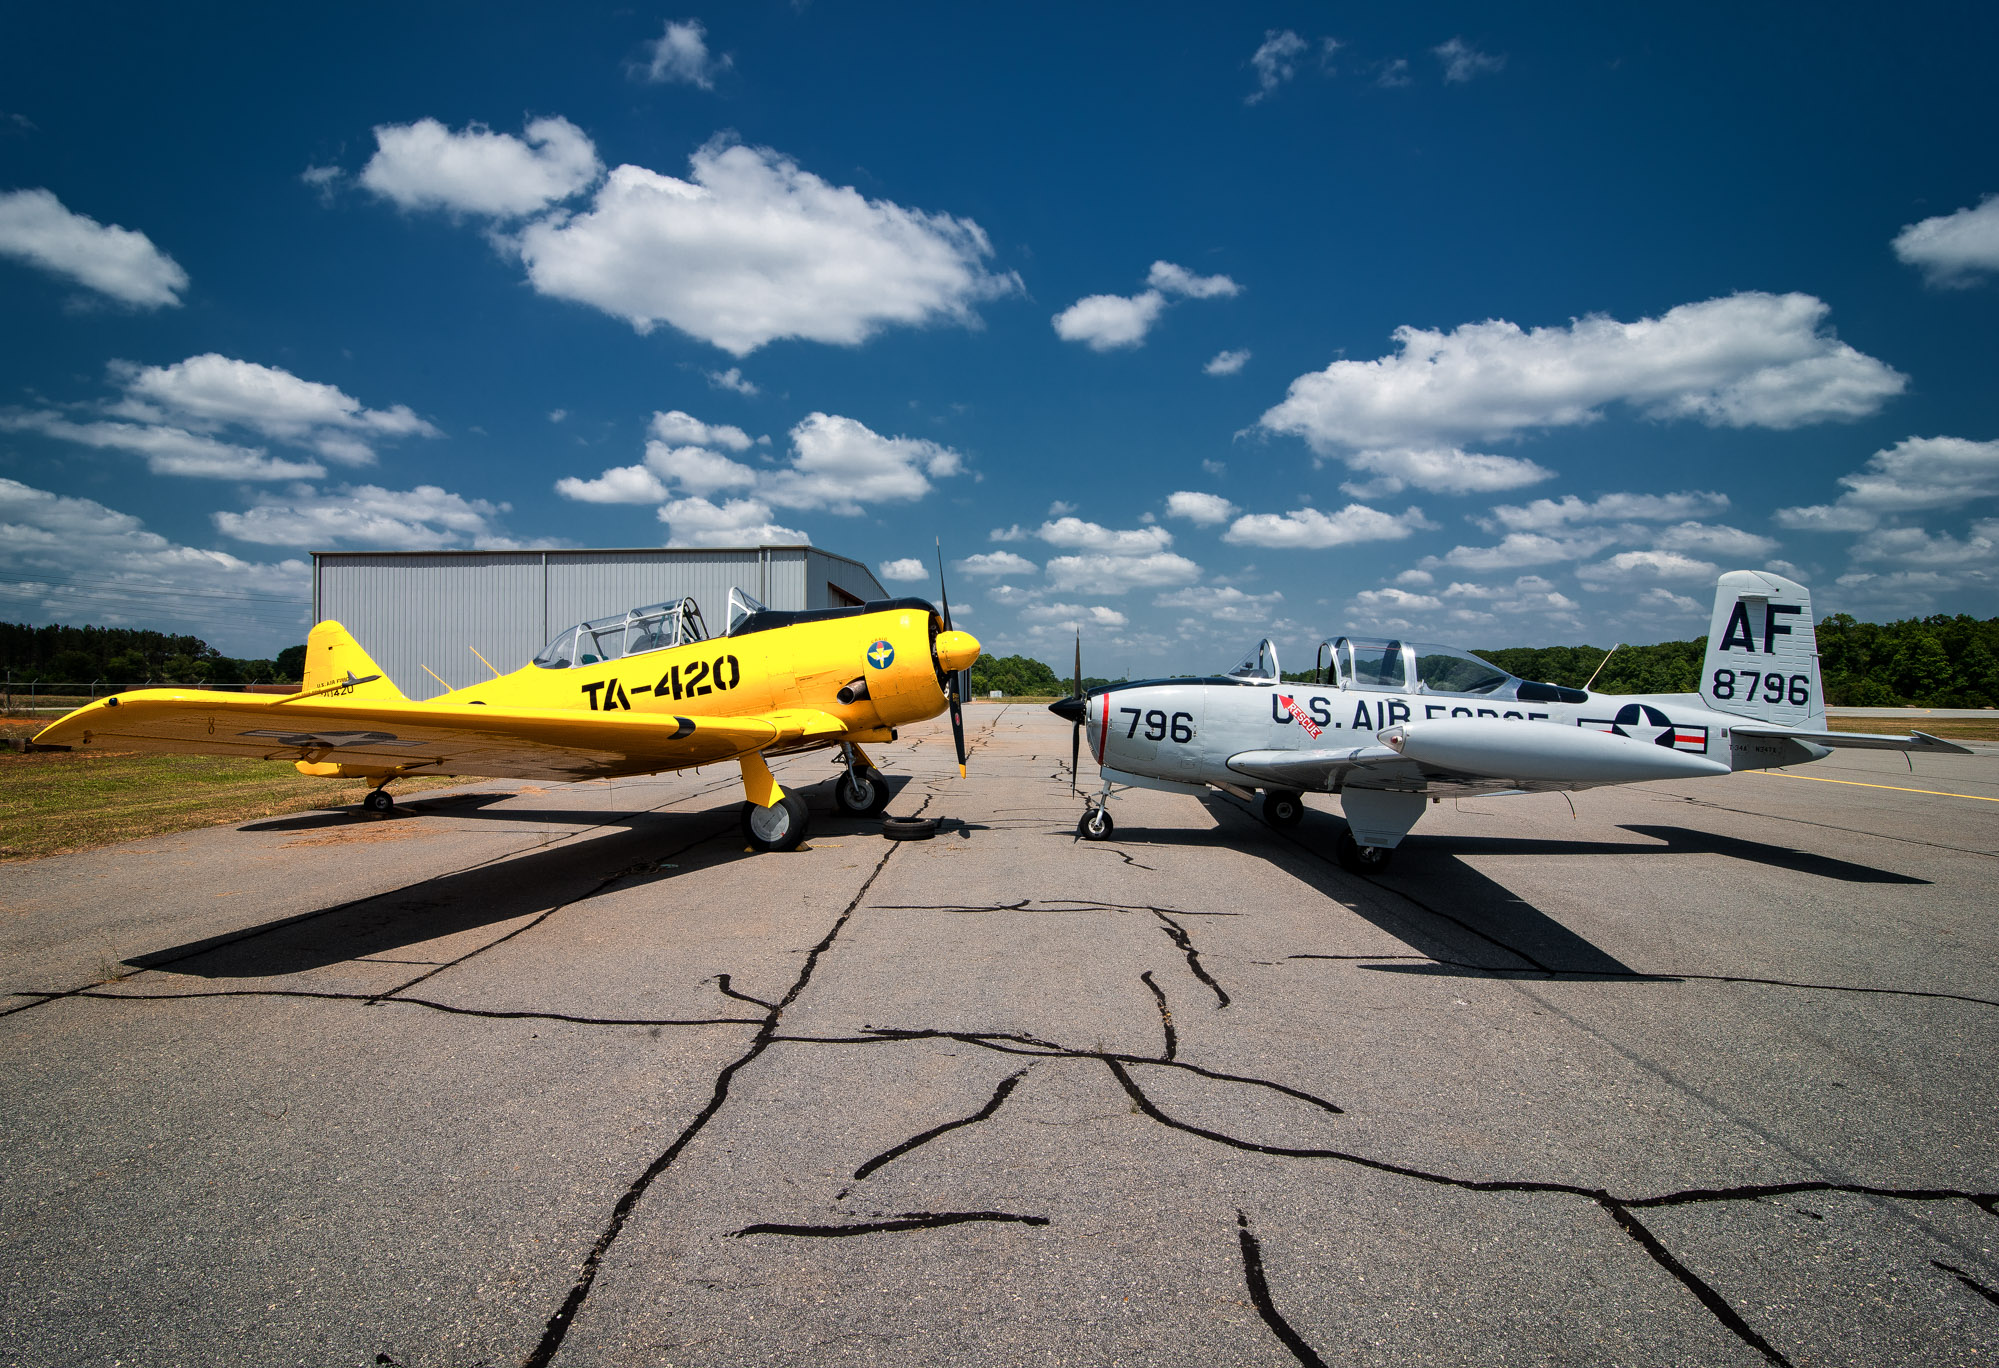 With its 5494 feet long and 98 feet wide runway, the Early County Airport (BIJ) can accommodate numerous types of aircraft. Just three nautical miles east of the city, its location makes for convenient business or pleasure visits.